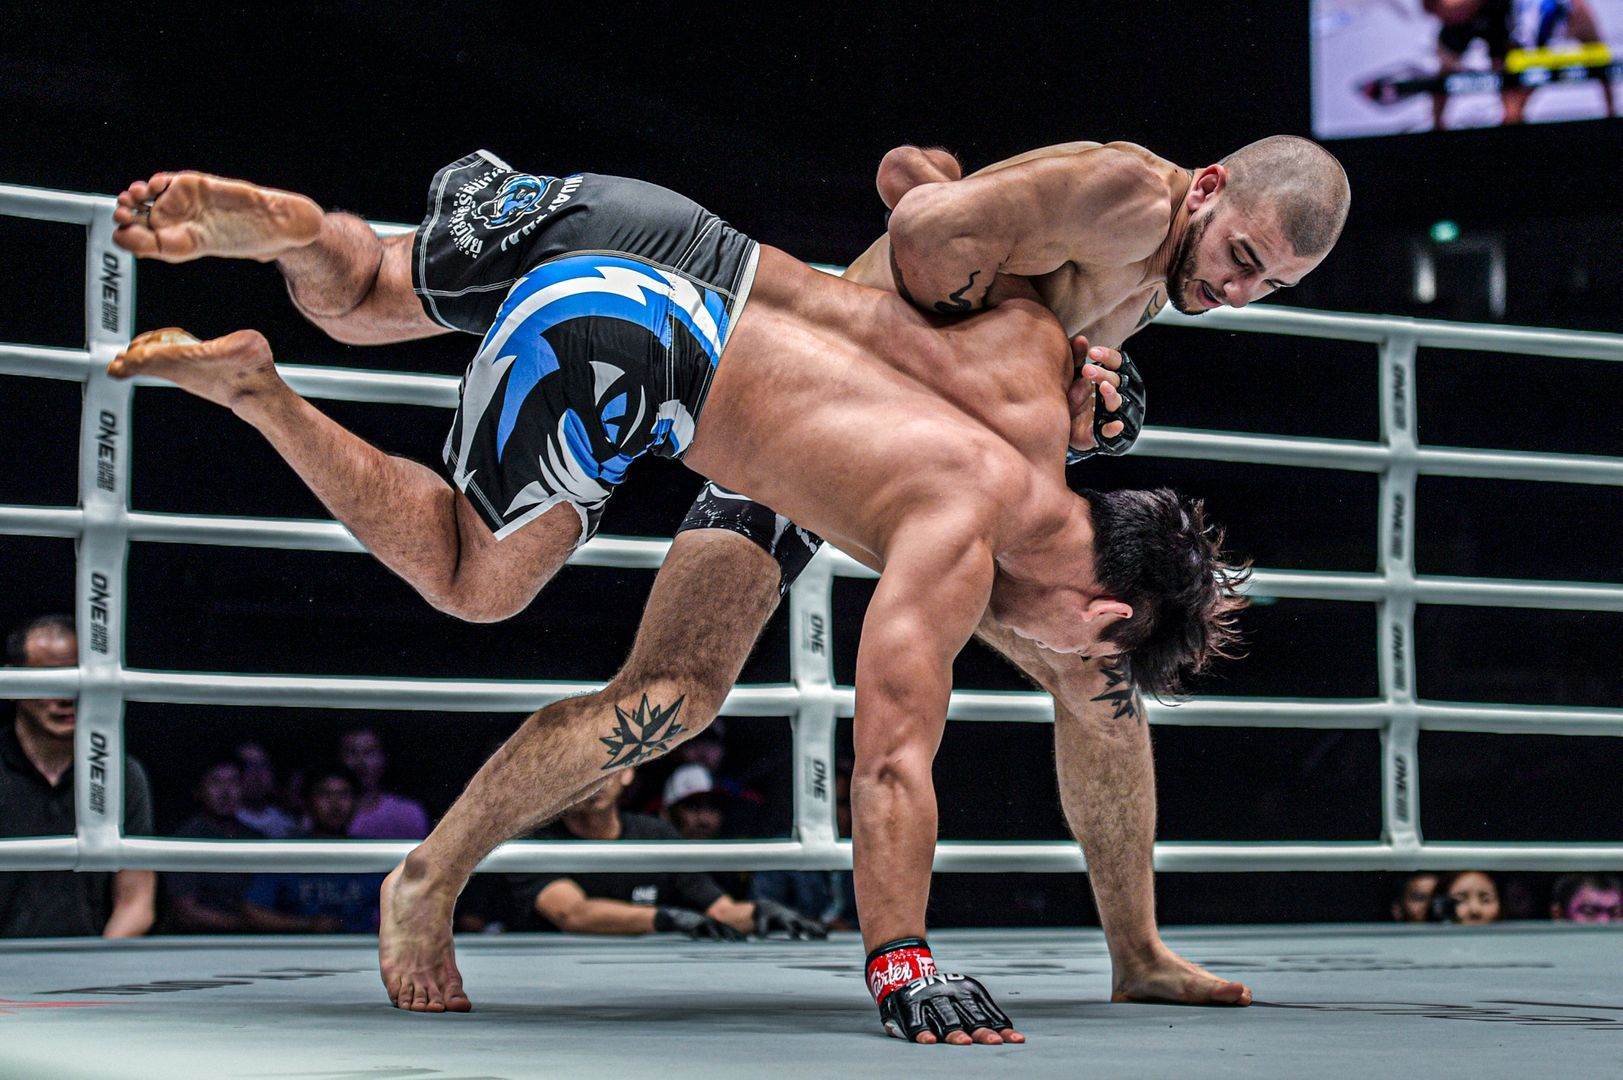 Iurie Lapicus faces Shannon Wiratchai in Singapore